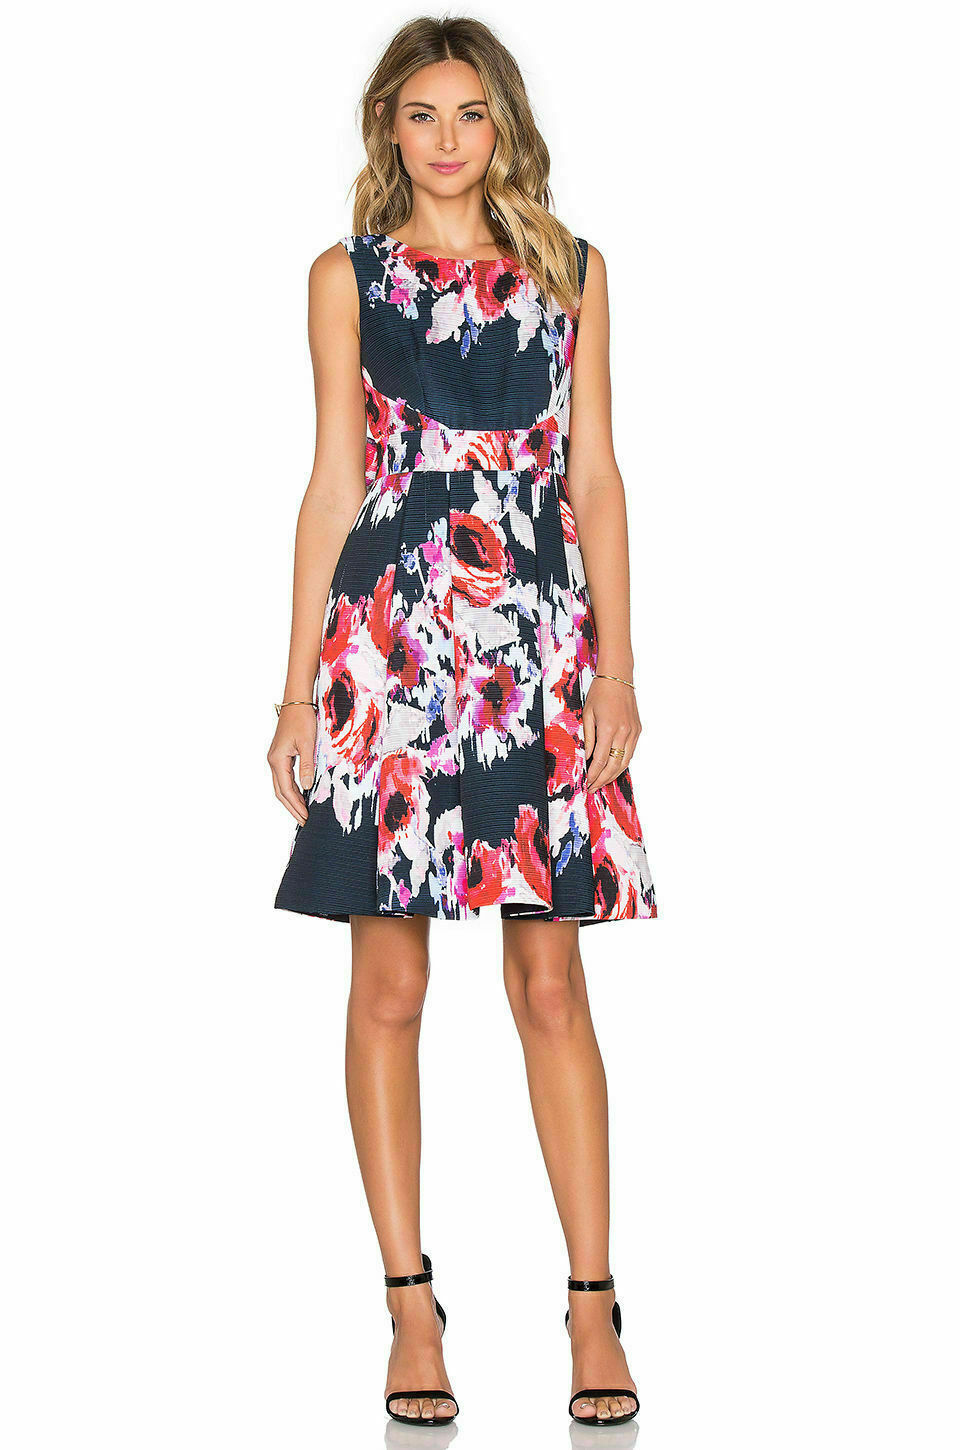 Kate Spade Womens Size 0 Blue Pink Hazy Floral Dress